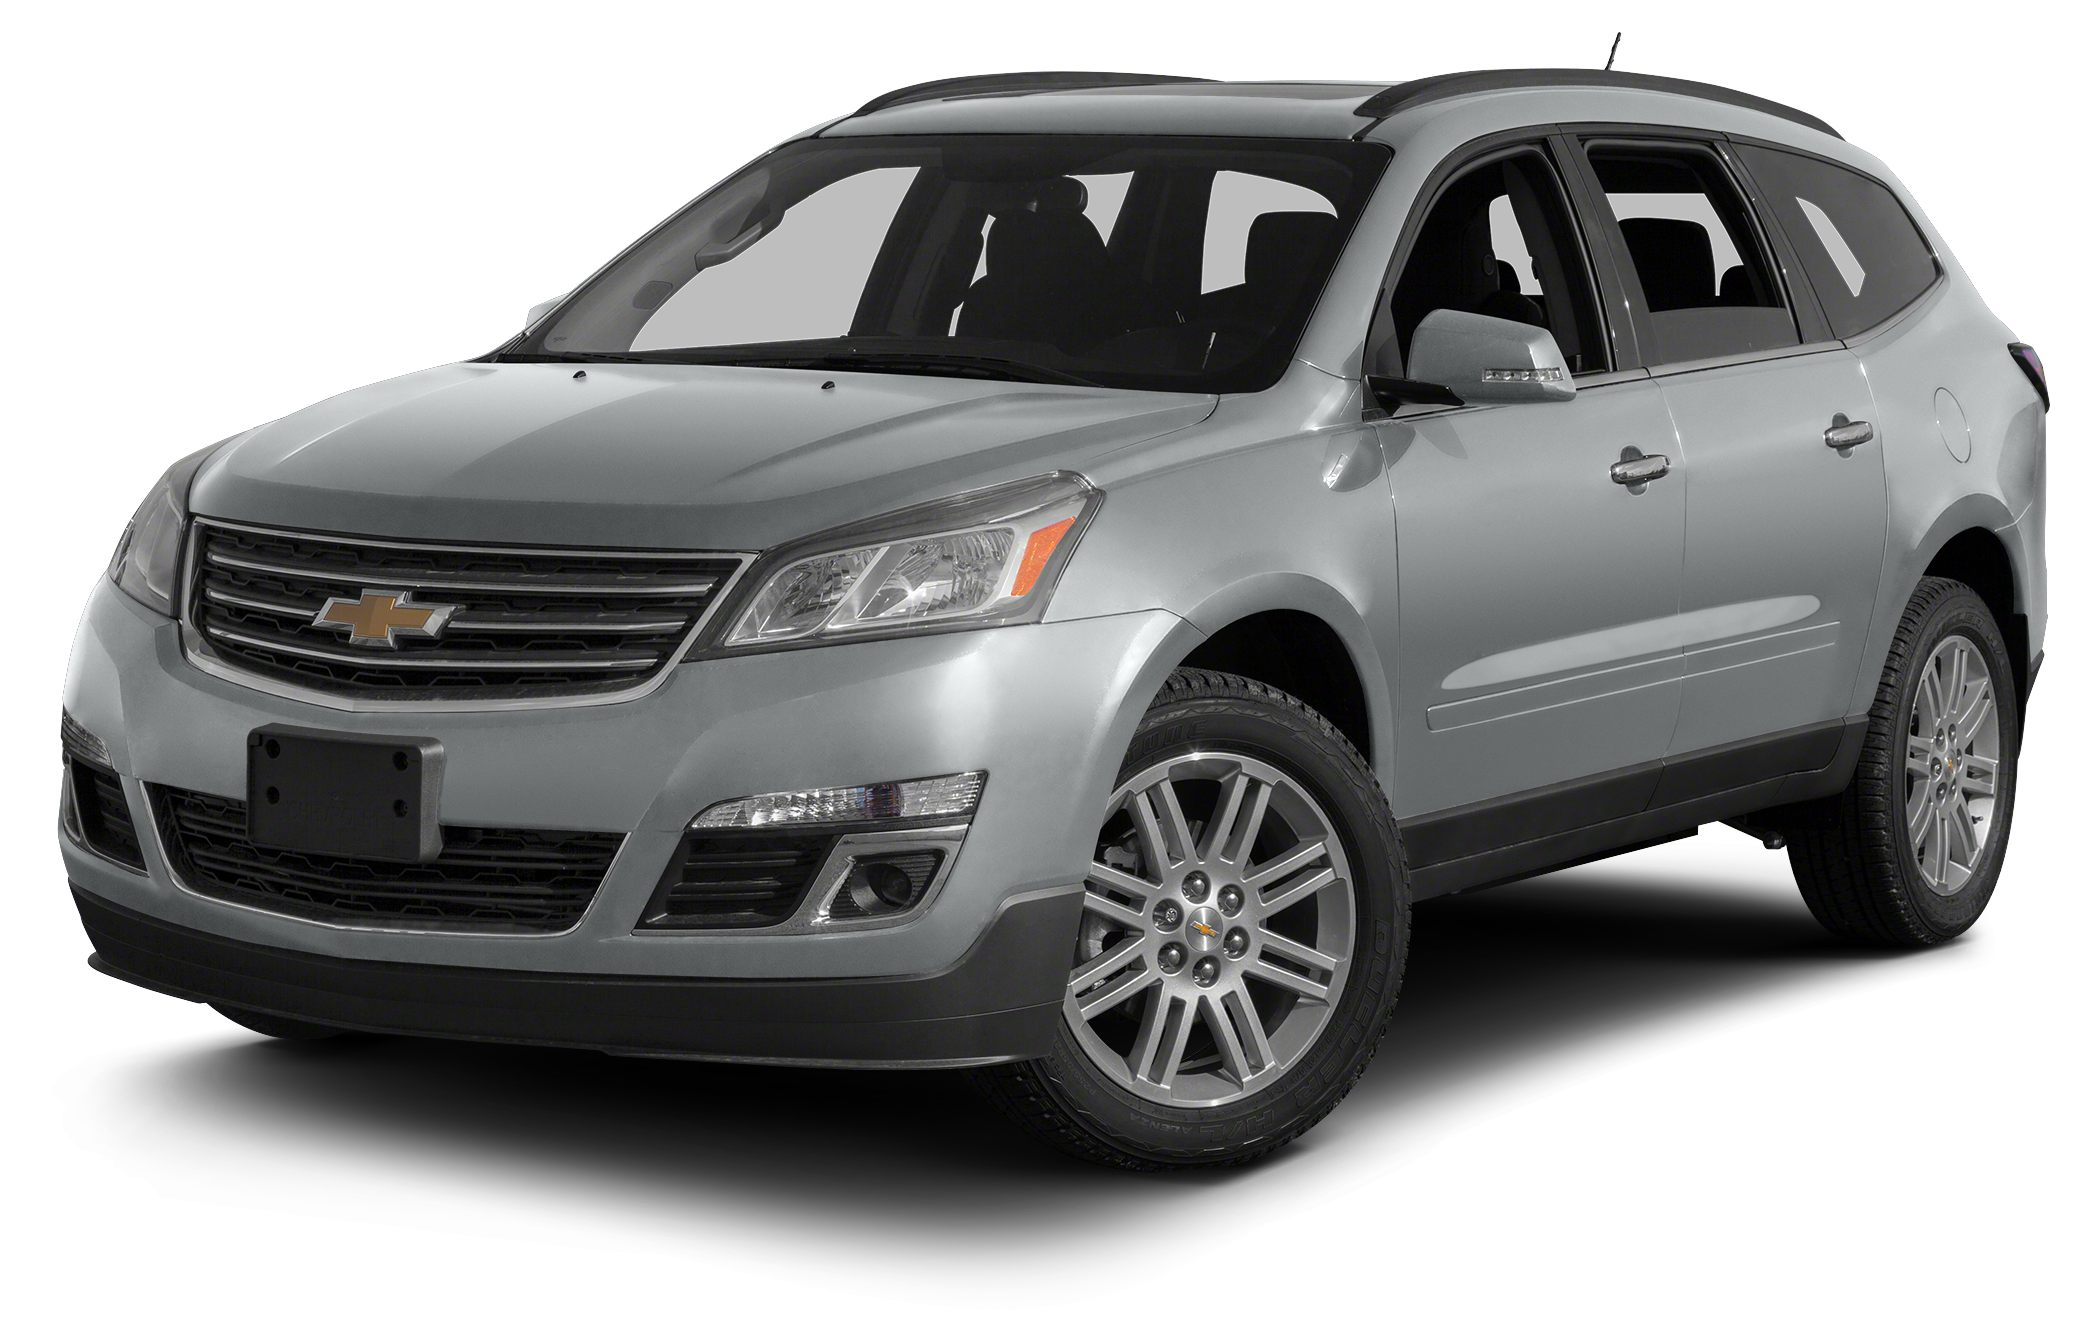 2013 Chevrolet Traverse LS 2013 CHEVROLET TRAVERSE LSCLEAN CARFAXONE OWNER LOCAL TRADEREAR